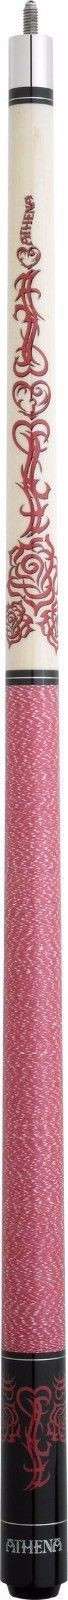 New Athena ATH34 Pool Cue Stick - Rose Colored Tribal Flower 17-21 oz & Case